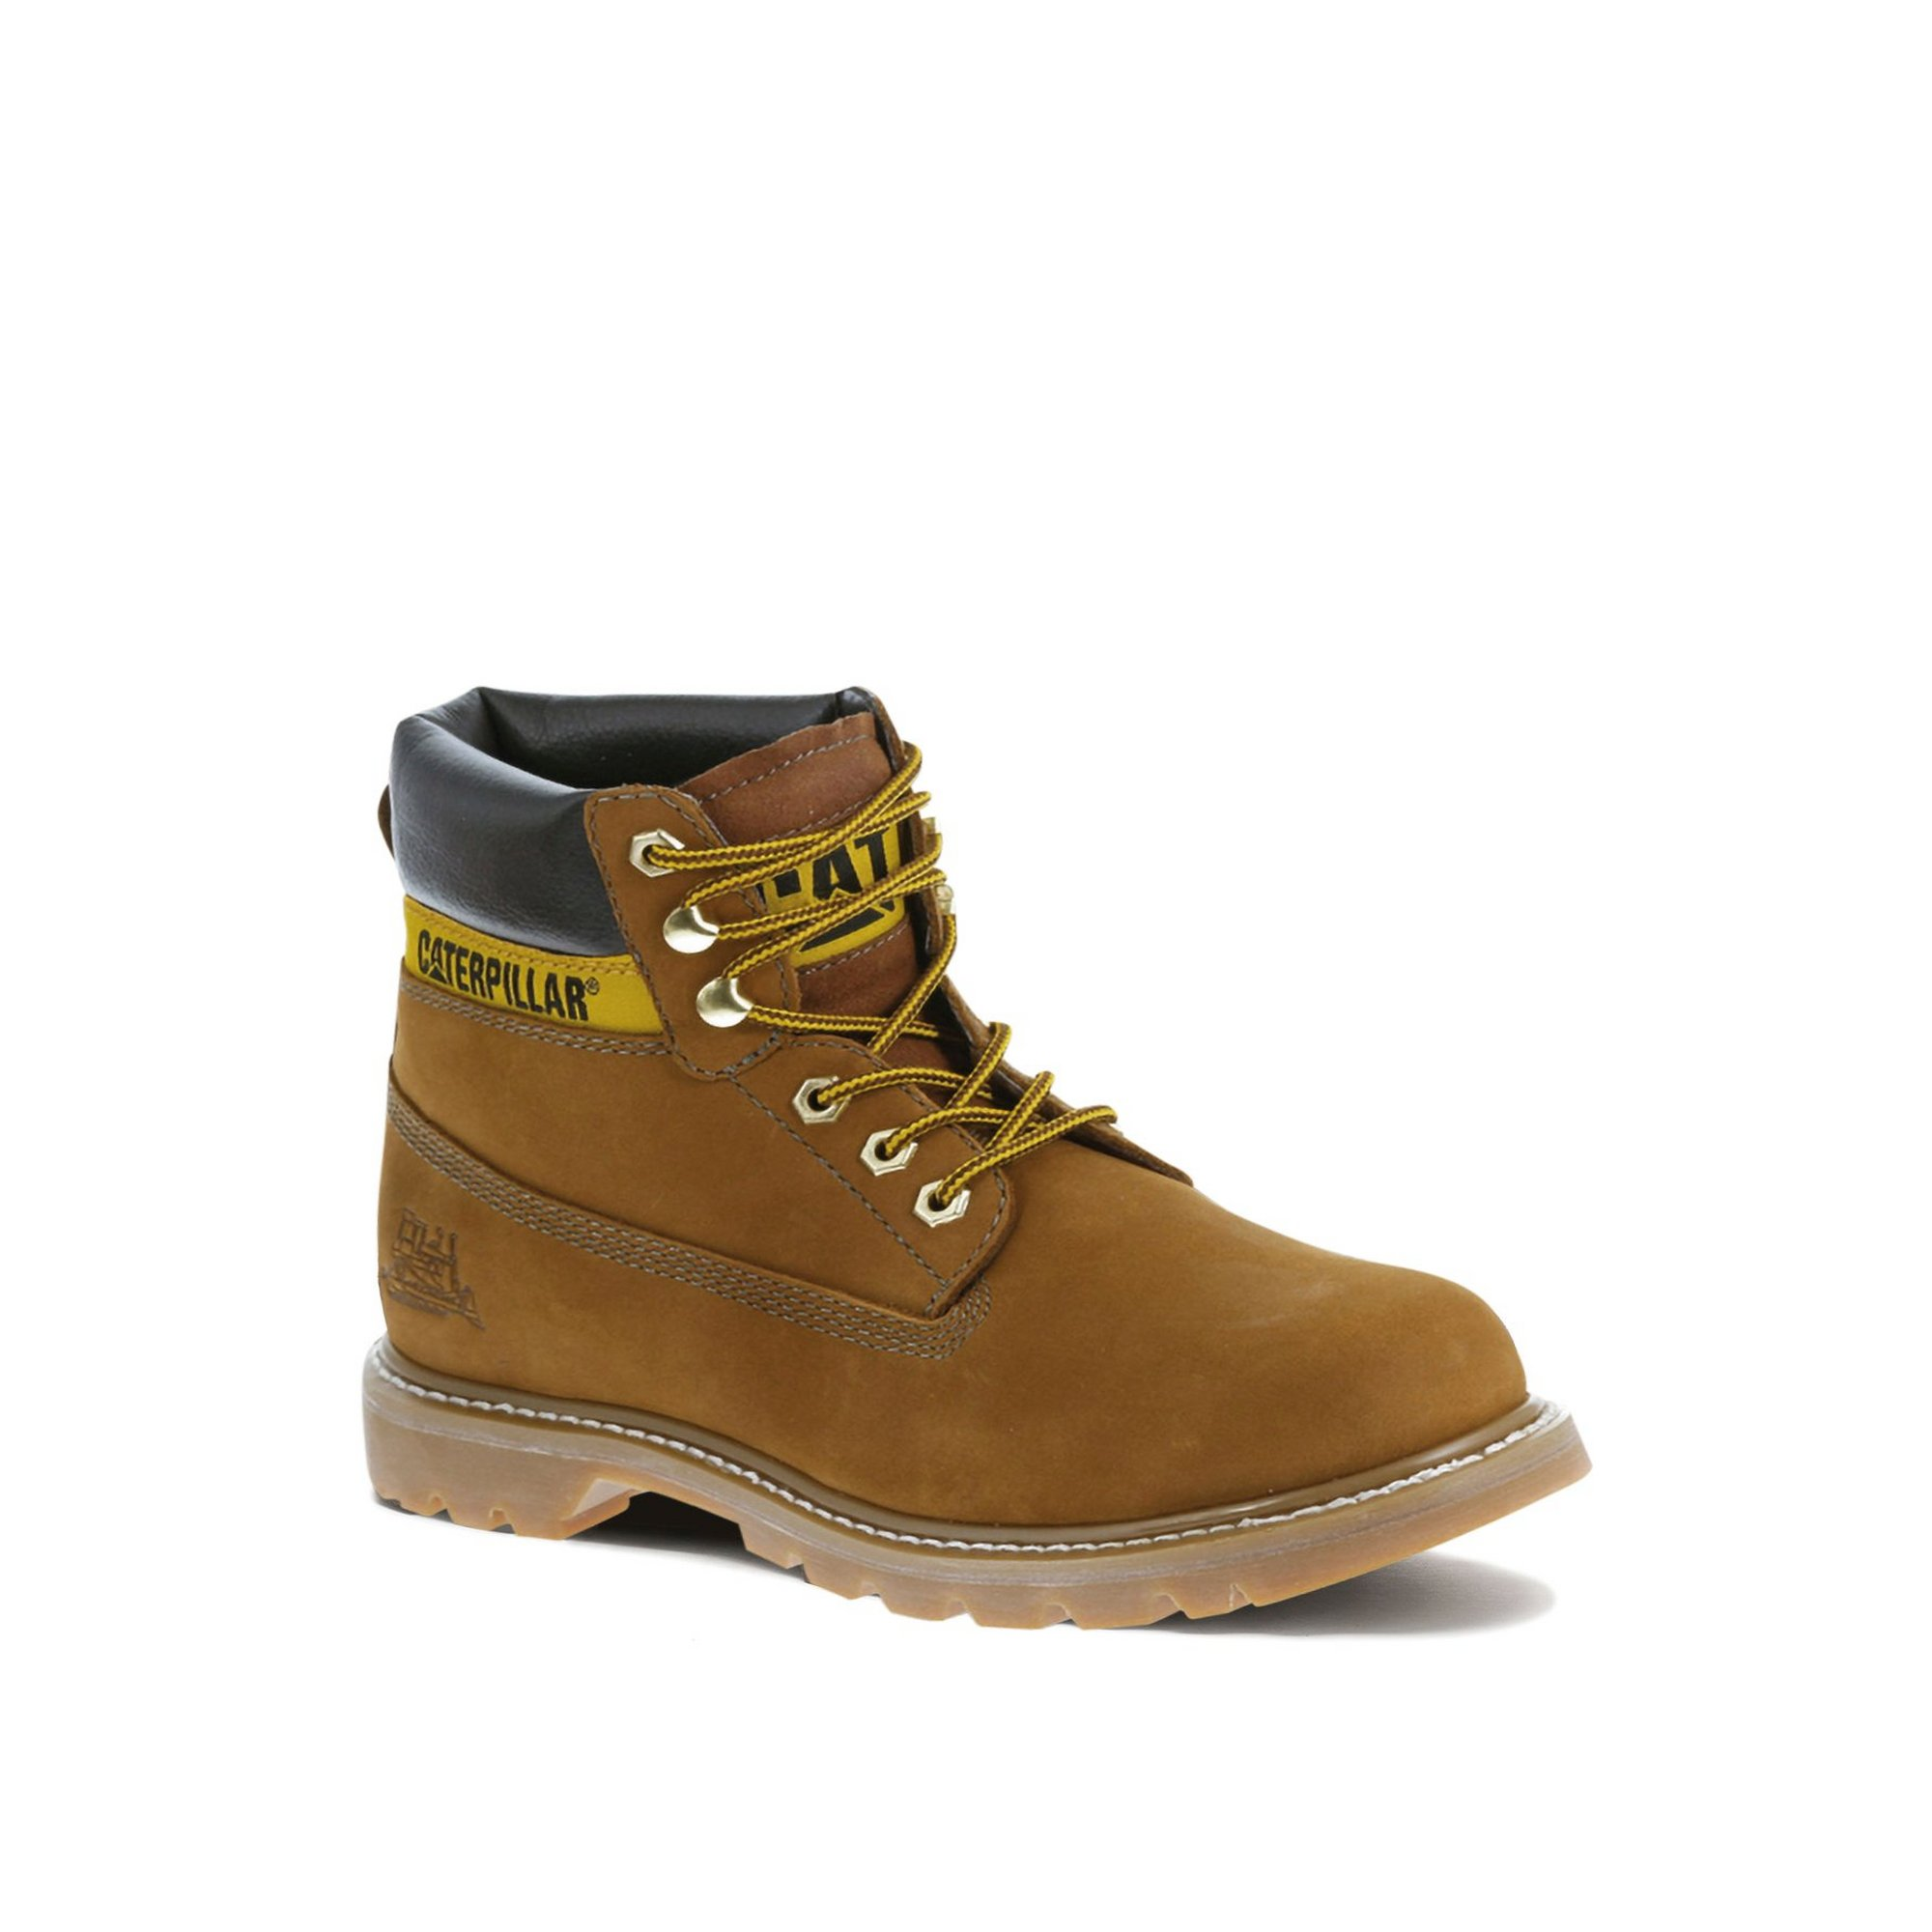 Image of Caterpillar Colorado Nubuck Tan Boots